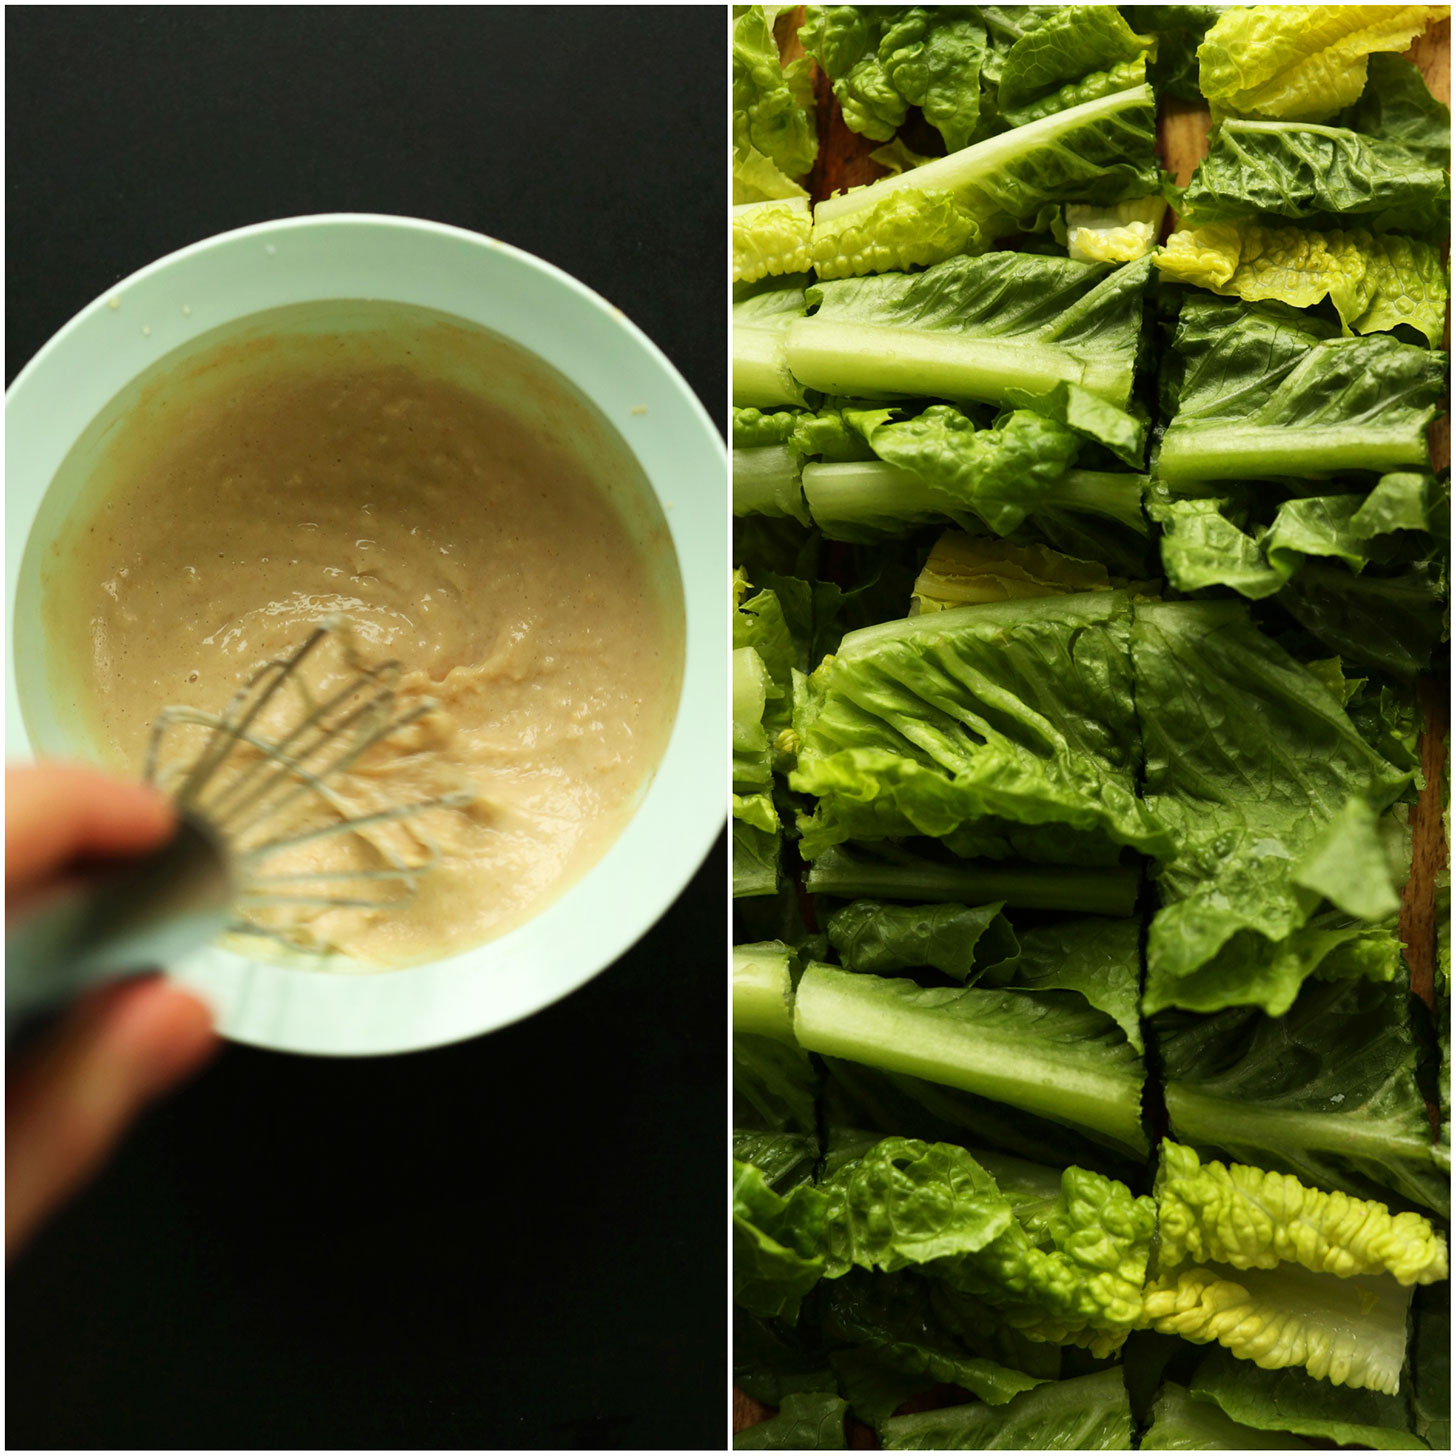 Photos of freshly chopped romaine and a hummus dressing for making vegan wraps